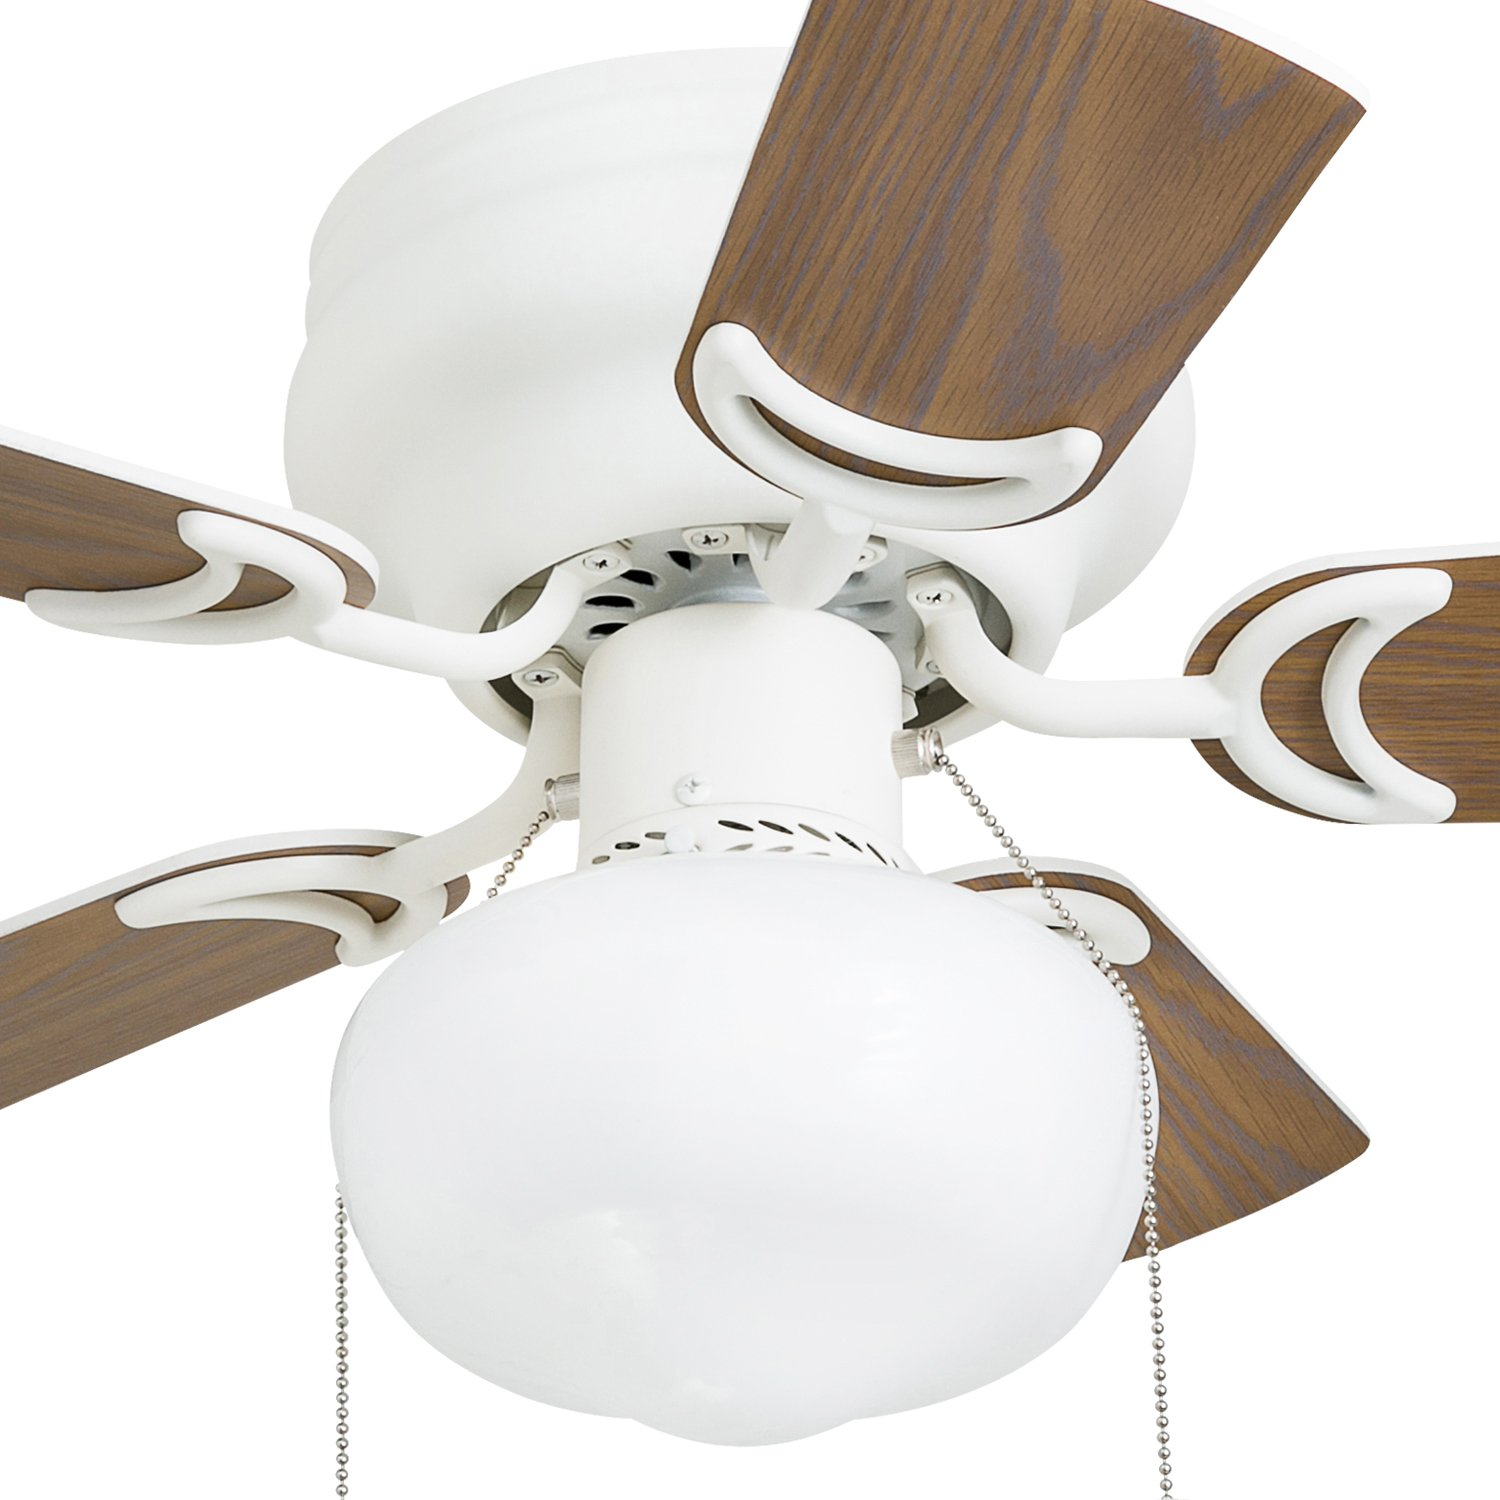 Prominence Home 41530-01 Hero 28'' Hugger Small Ceiling Fan, LED Schoolhouse Globe, Glossy White by Prominence Home (Image #10)